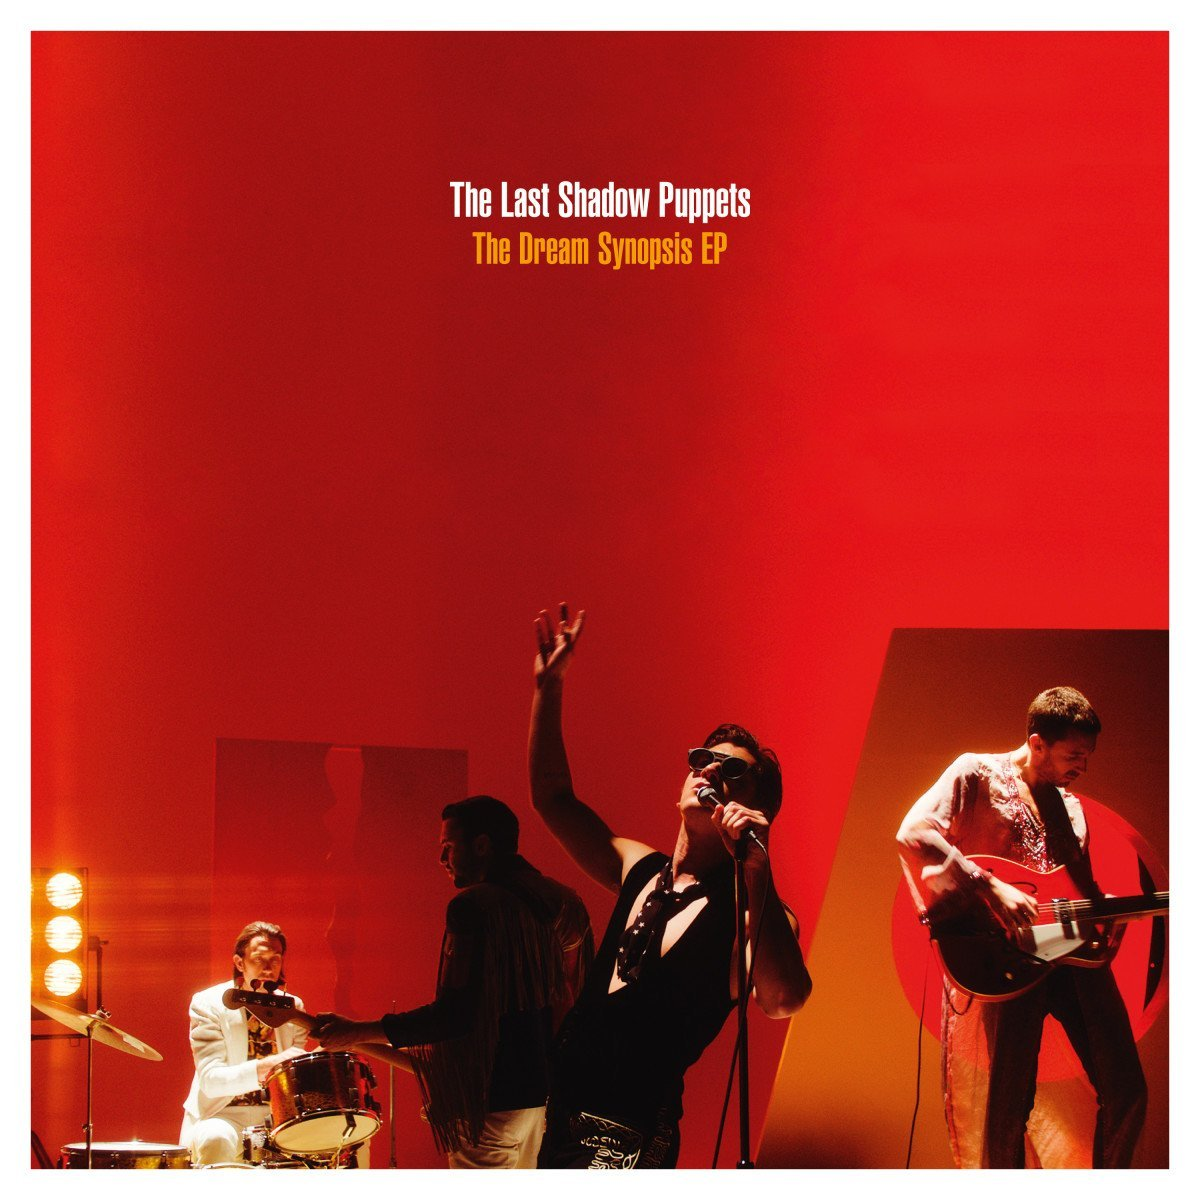 The Last Shadow Puppets - The Dream Synopsis EP